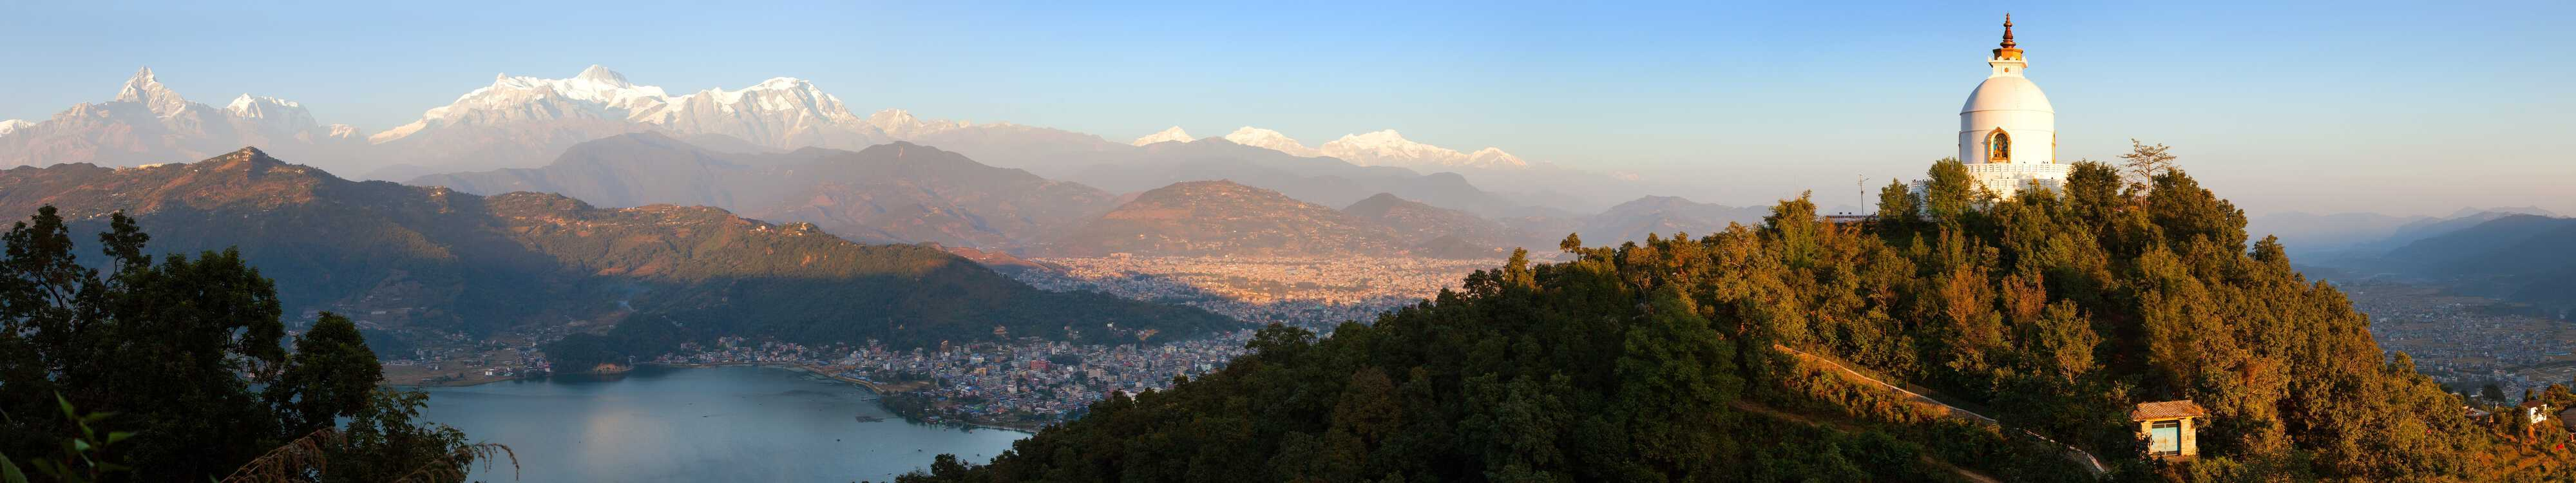 Evening panoramic view of world peace stupa, Phewa lake, Pokhara and great himalayan range, Annapurna, Manaslu, Nepal Himalayas mountains